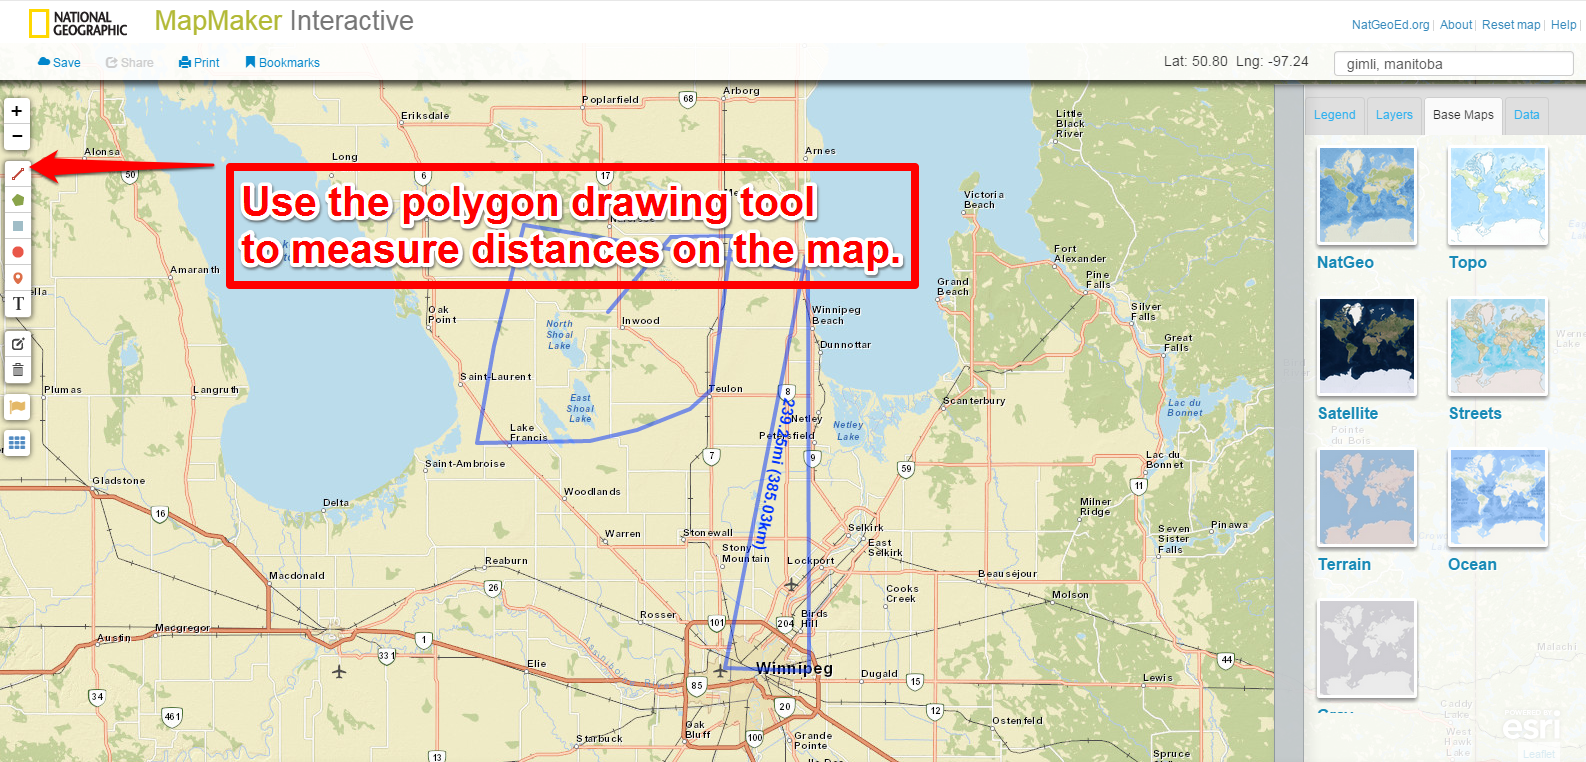 Free Technology for Teachers: Measure Distances Between ... on free map design, free map game, free trip maps, free concept maps, web mapping, free art software, free print color world map, free map editor, d d maps maker, yahoo! maps, free outline maps, free map making program, free map art, free map generator, free mind map, zygote body, free interactive world map, google maps, free printable us map, free map creator, free map designer, free dungeon maps, free rpg city map, free map software,